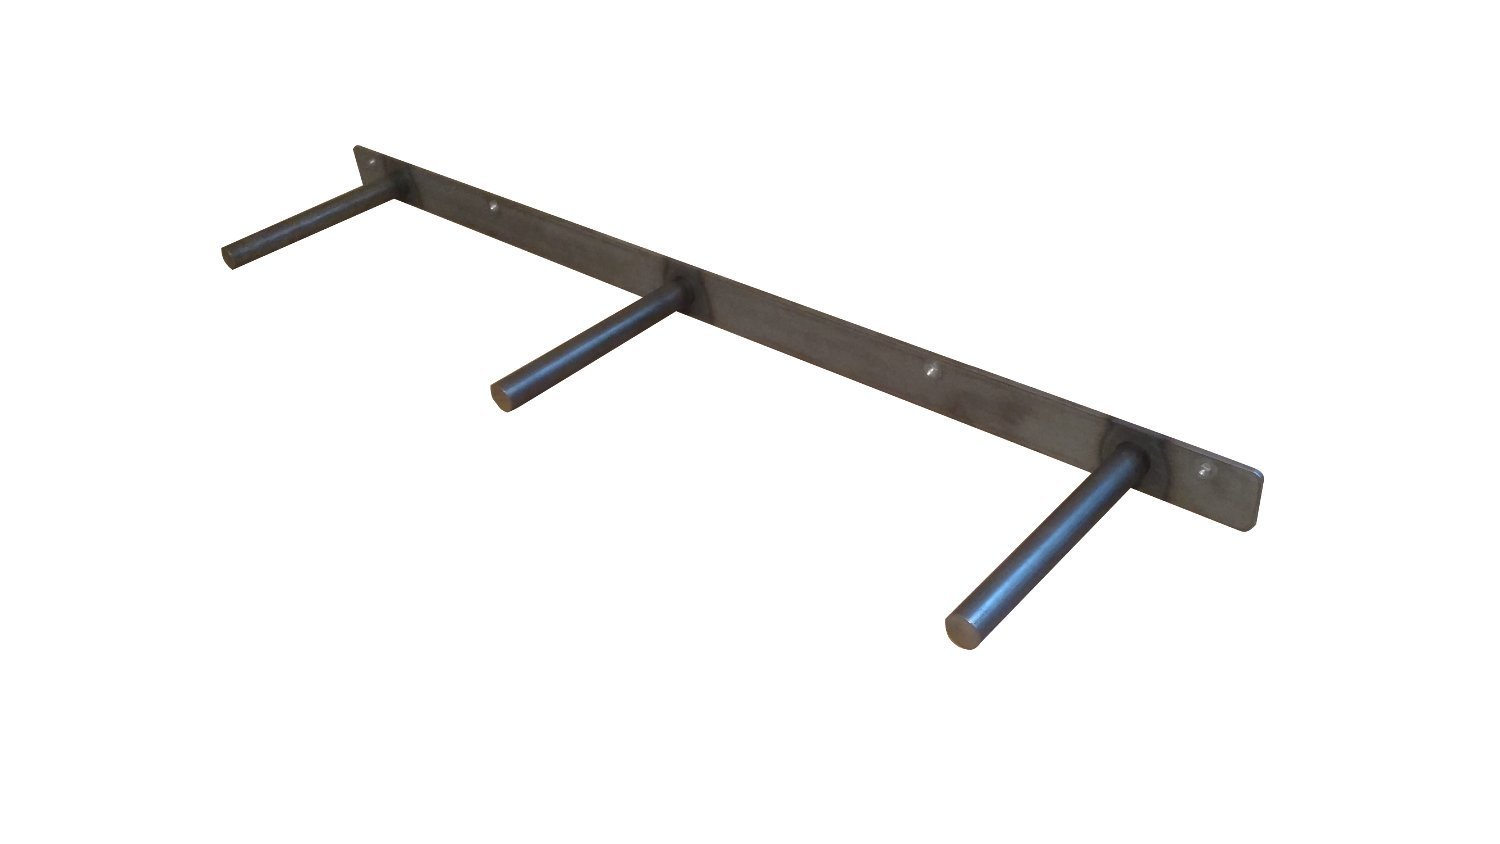 32'' Floating Shelf Heavy Duty Solid Steel Bracket- For 36'' + Shelves MADE IN THE USA! by Walnut Wood Works (Image #5)